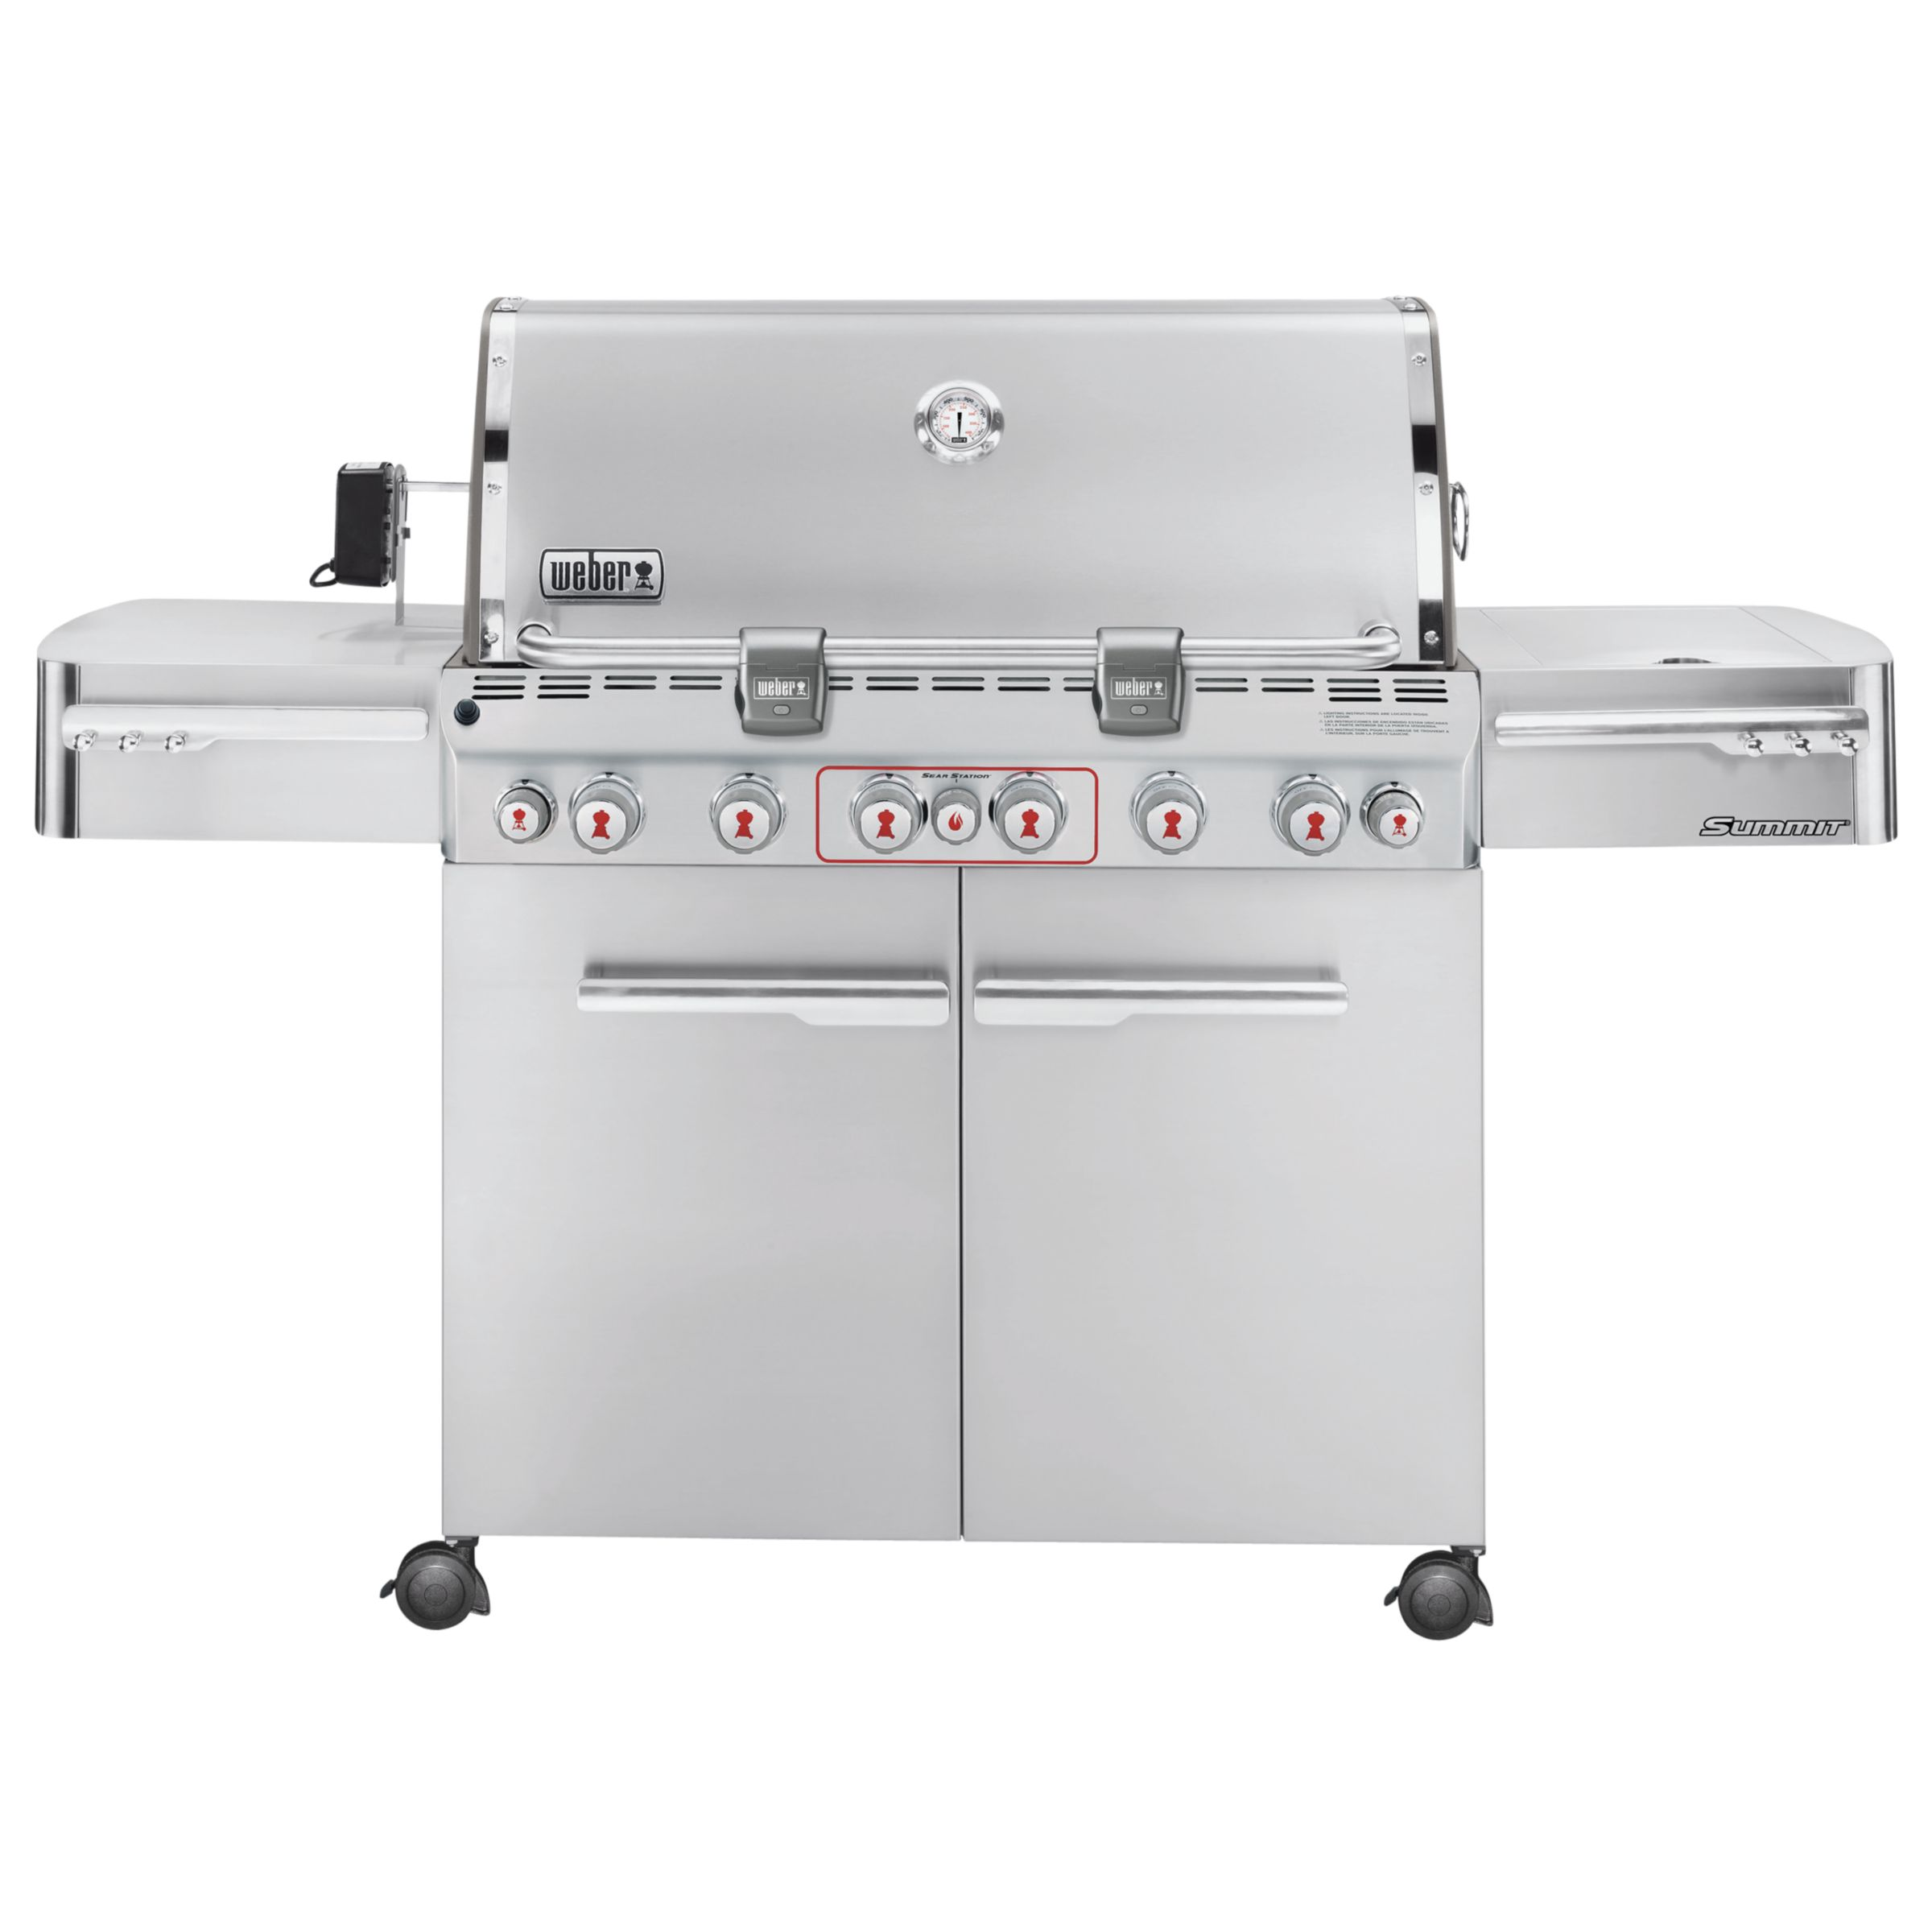 Weber S670 Gas Barbecue